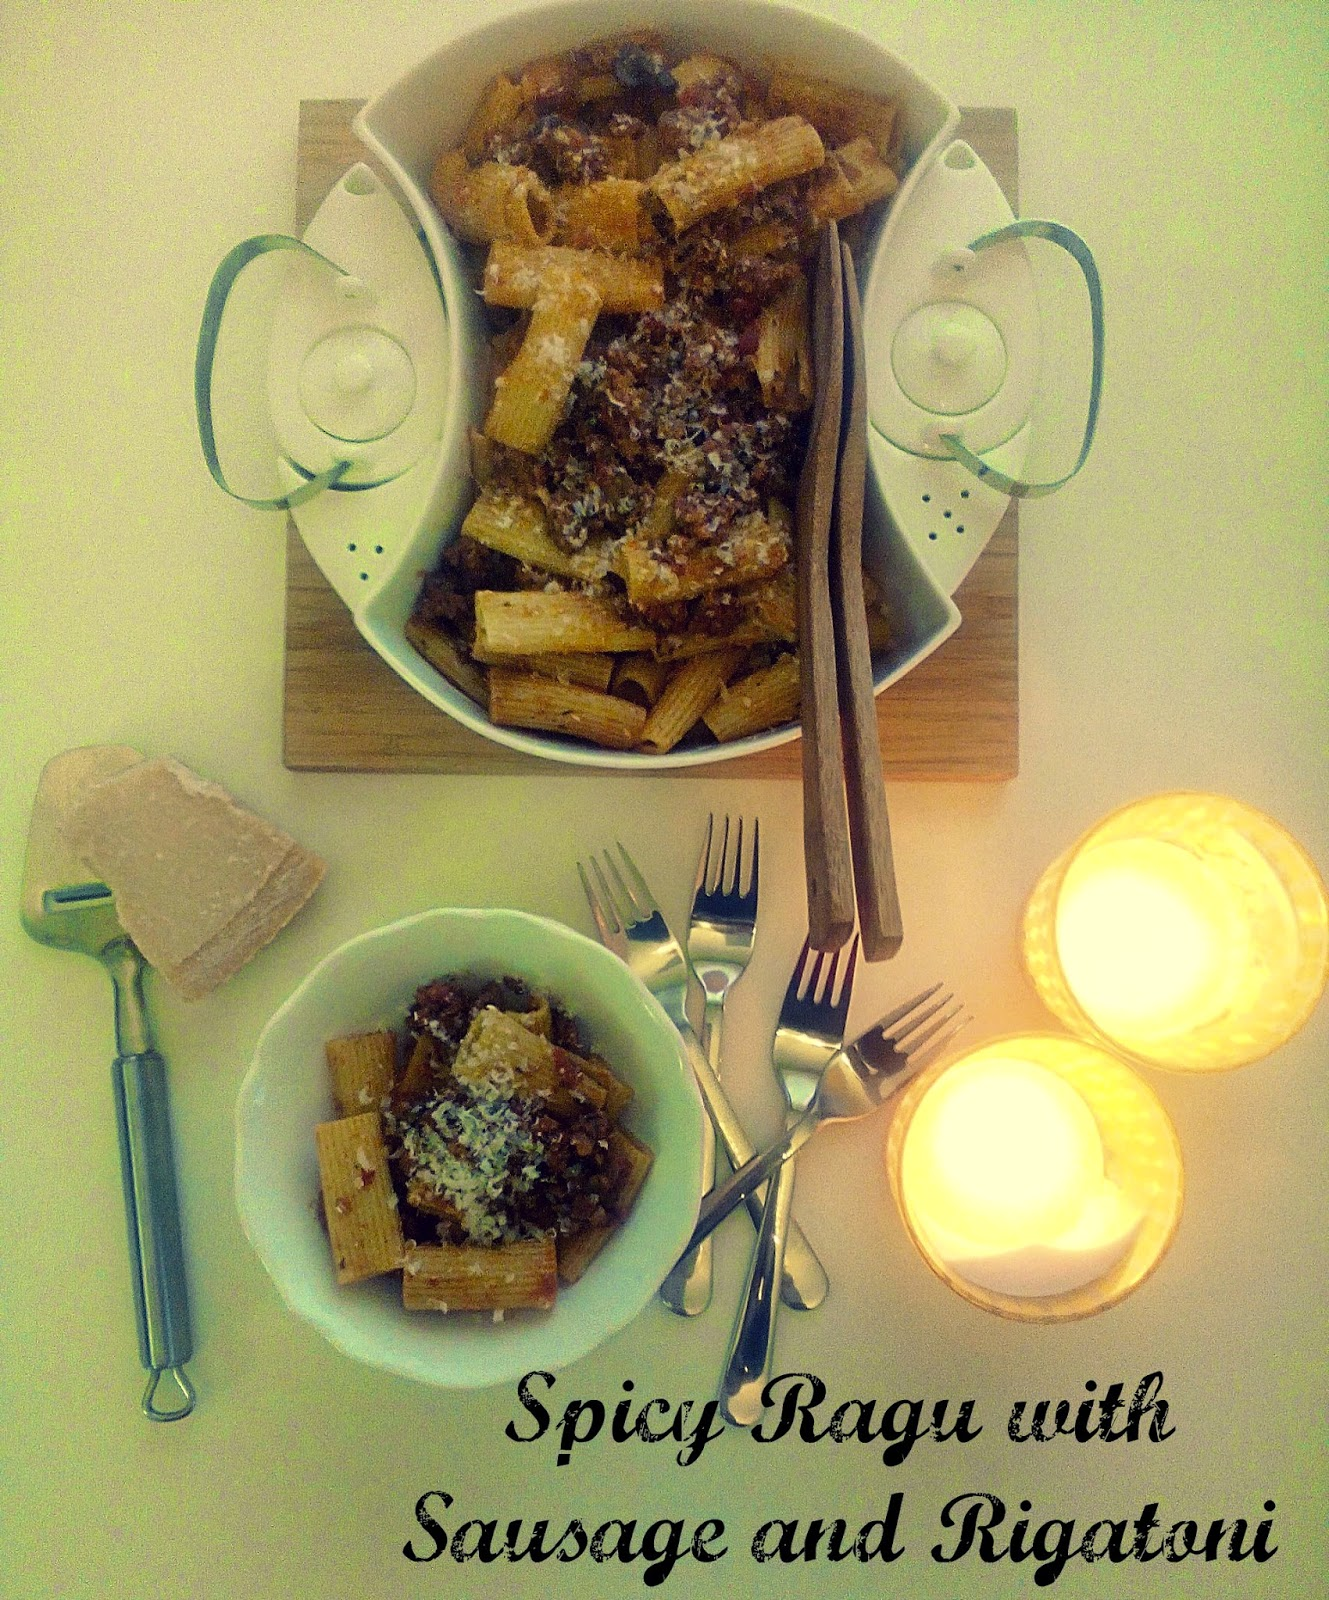 PASTA COOKING CHALLENGE: SPICY RAGU WITH SAUSAGE AND RIGATONI ...